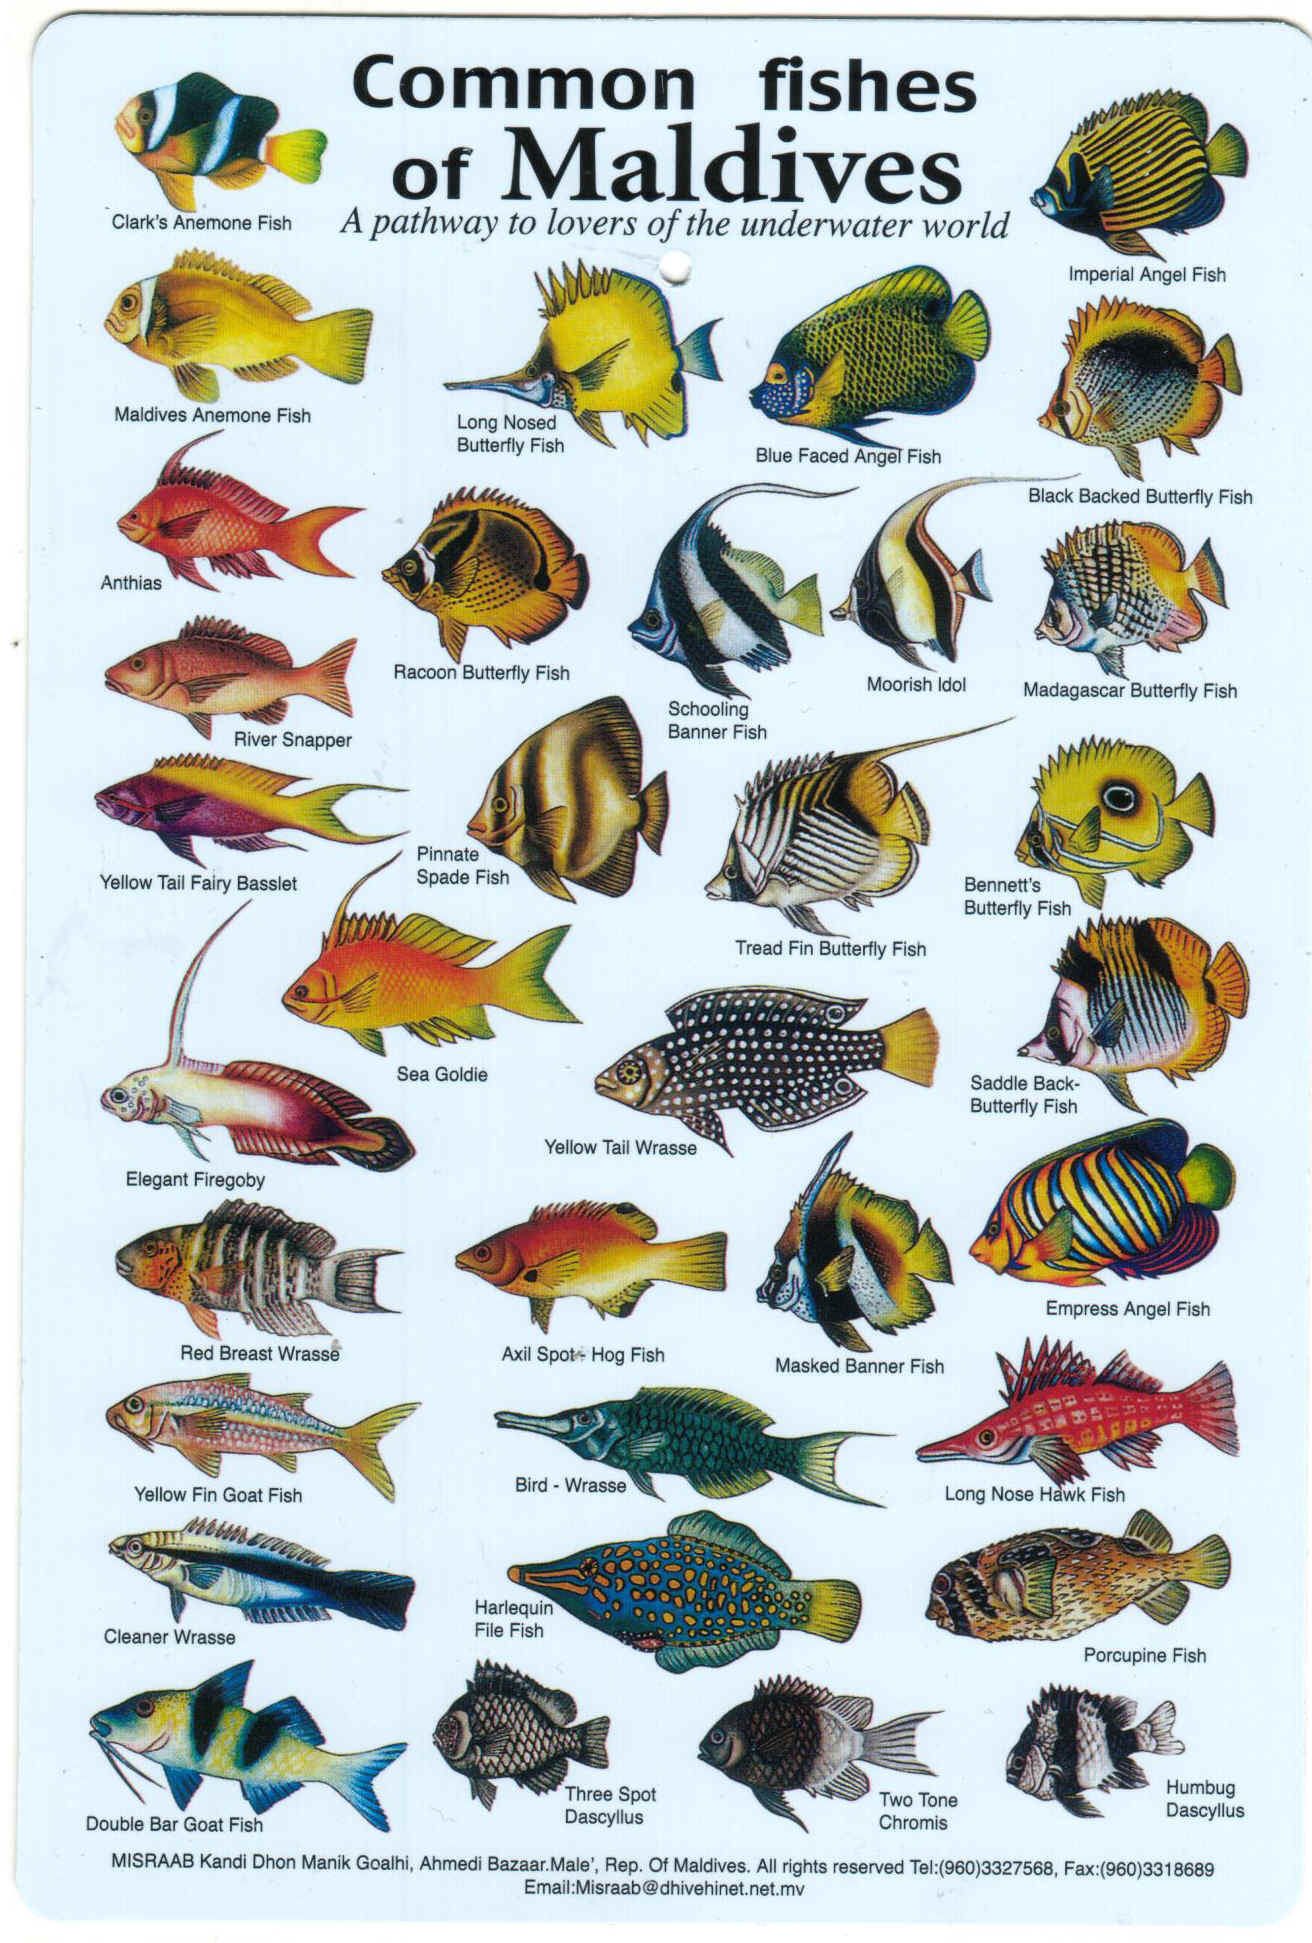 Fishes Of The Maldives Identification Chart Water Resistant Laminated Card